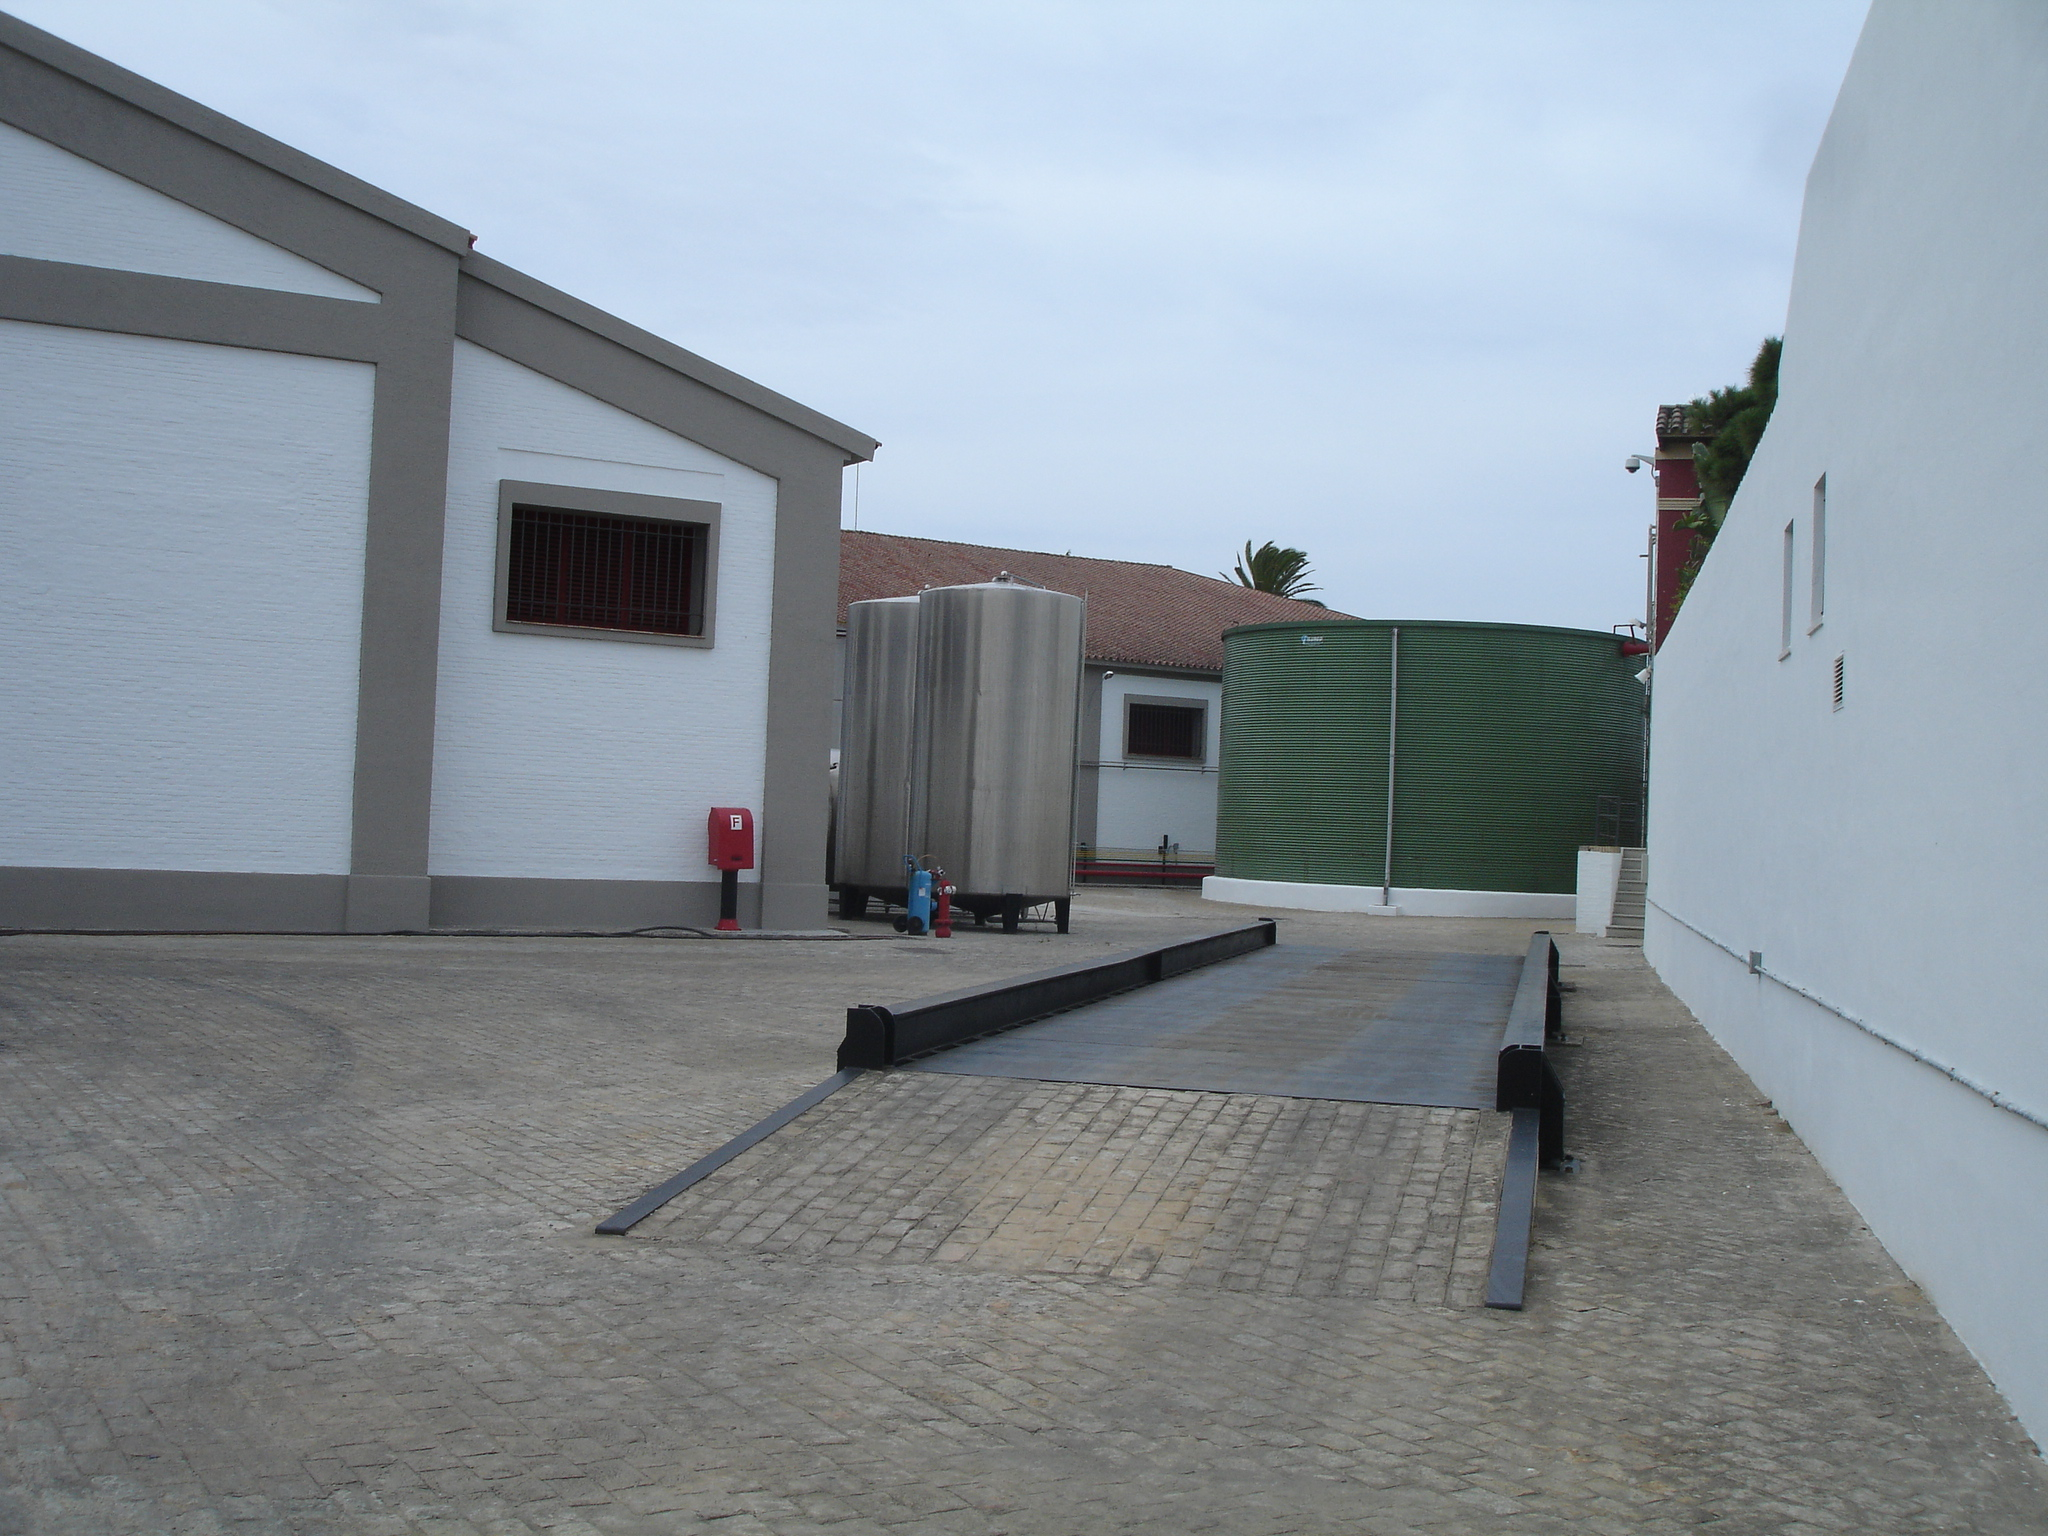 weighbridge,usedforweighingtrucks